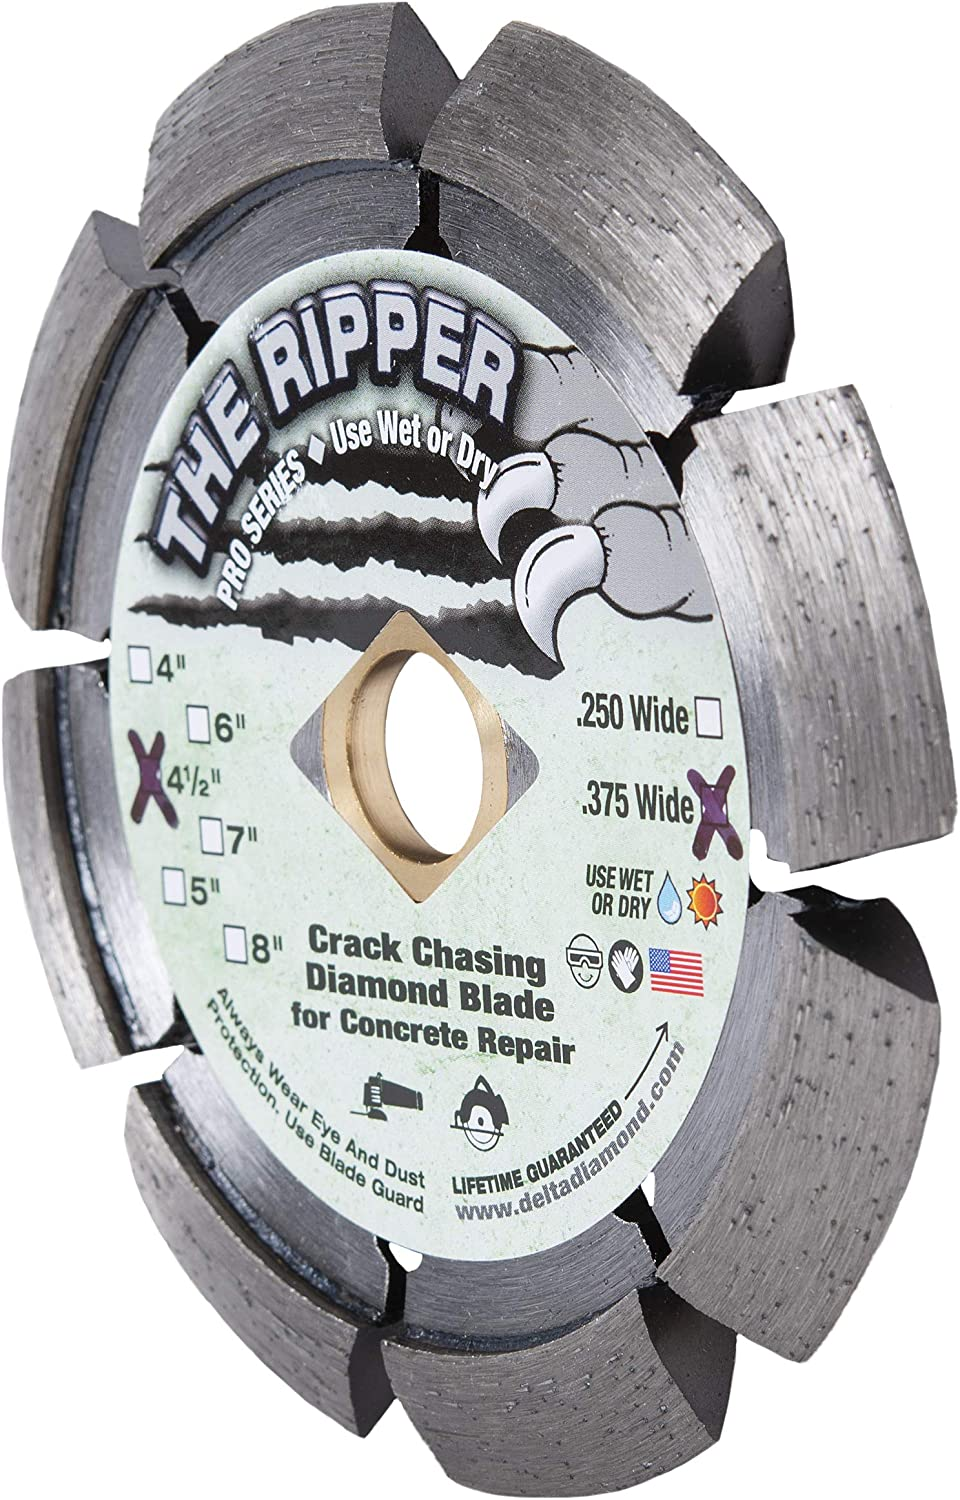 Ripper Pro Series Crack Chaser Diamond Blade 4-1/2-Inch by .375